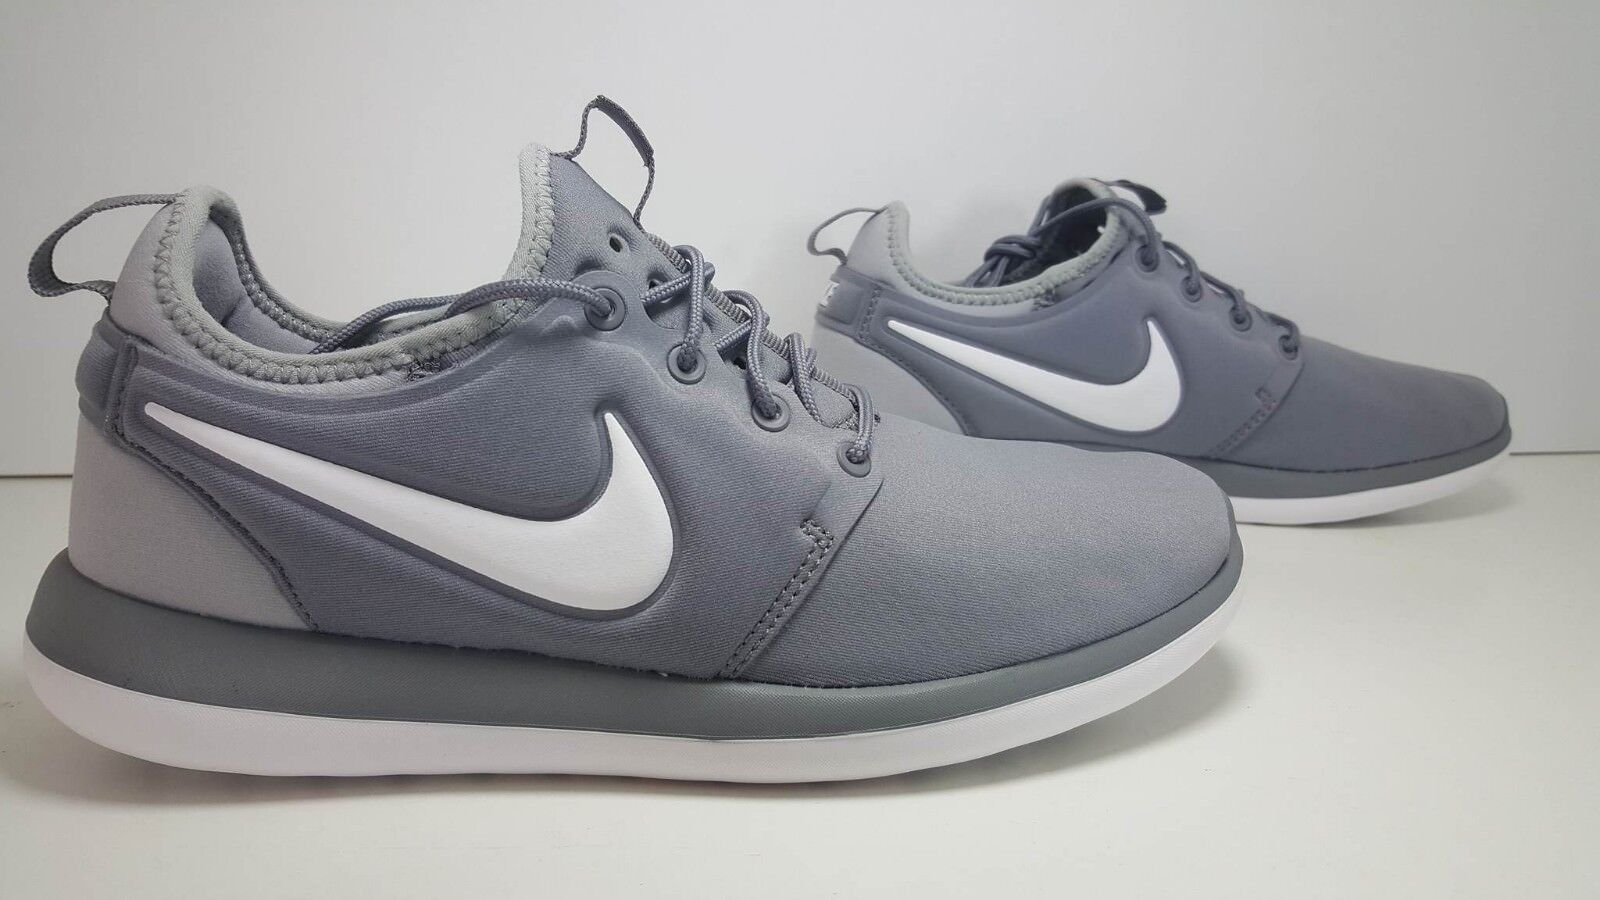 SCARPE N 36.5  NIKE ROSHE TWO Price reduction SNEAKERS BASSE ART 844653 004 Seasonal price cuts, discount benefits